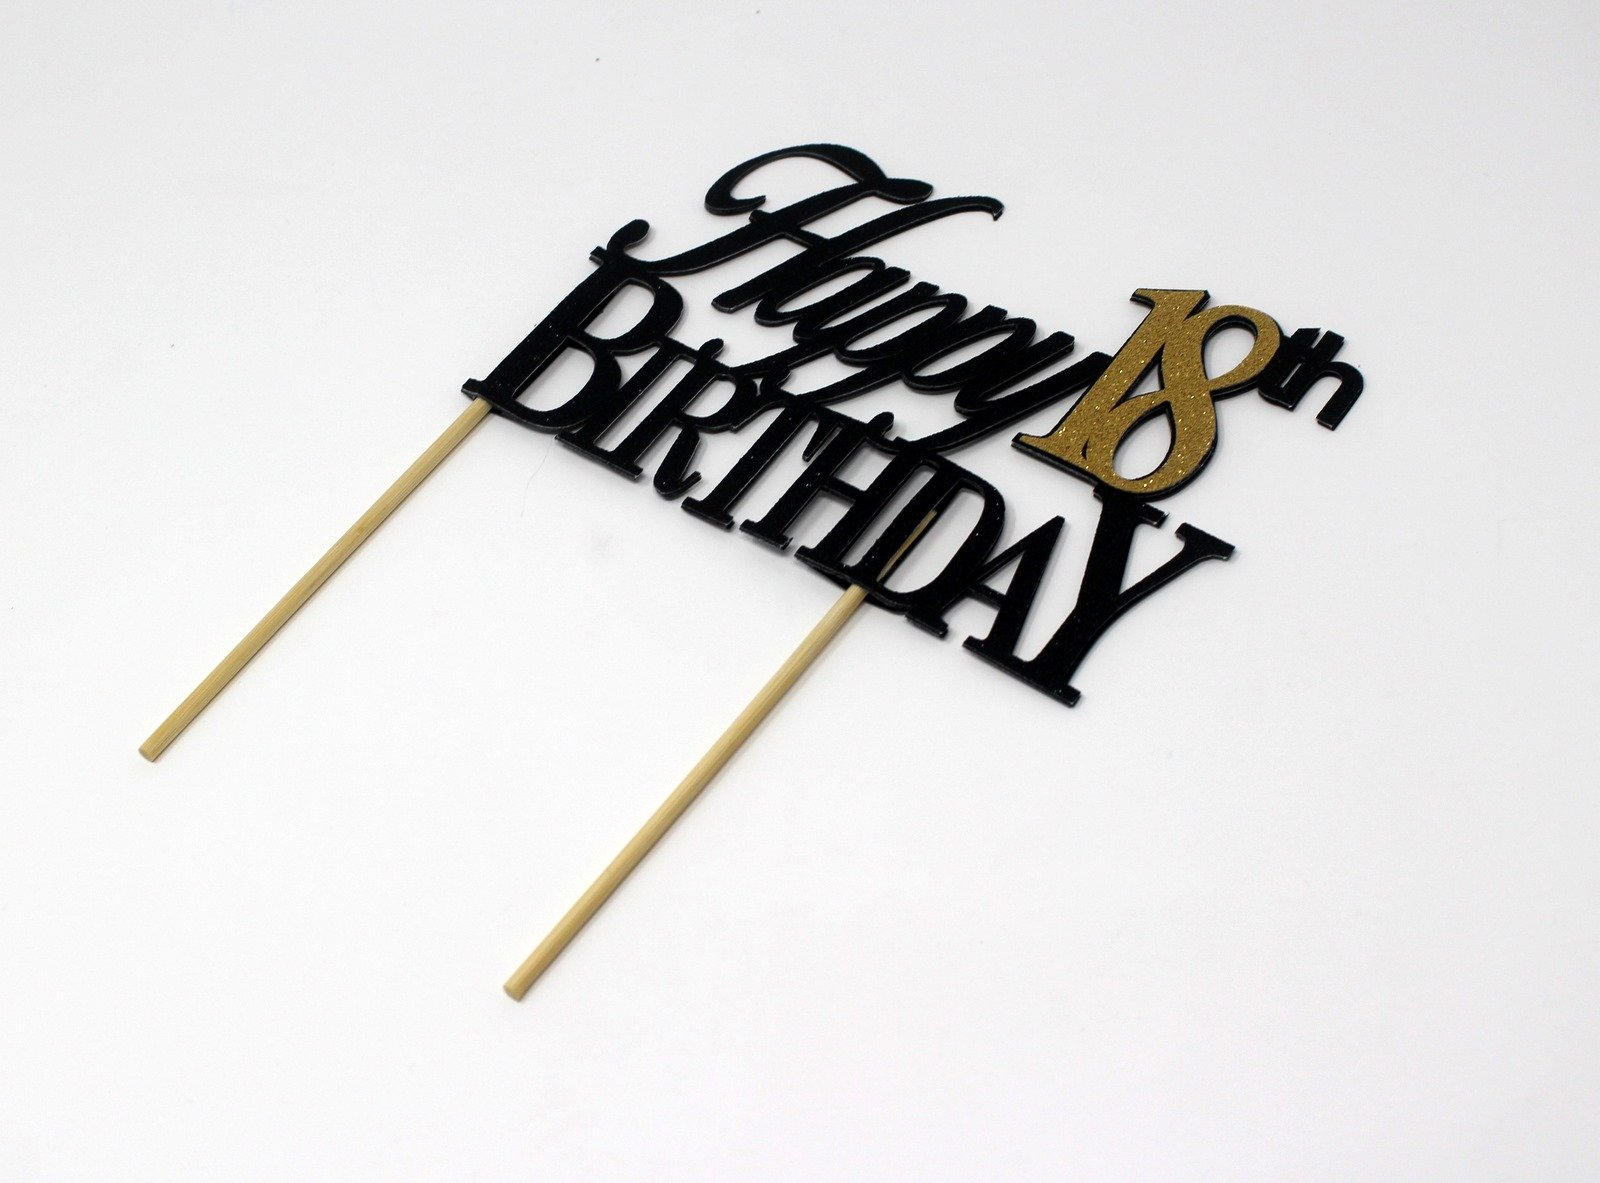 All About Details CATH18BBGO Happy, 1pc, 18th Birthday, Cake, Party Decor, Glitter Topper (Black & Gold), 4in Tall (Plus 2pcs of 4-in Wood skewers) & 6-in Wide by All About Details (Image #3)